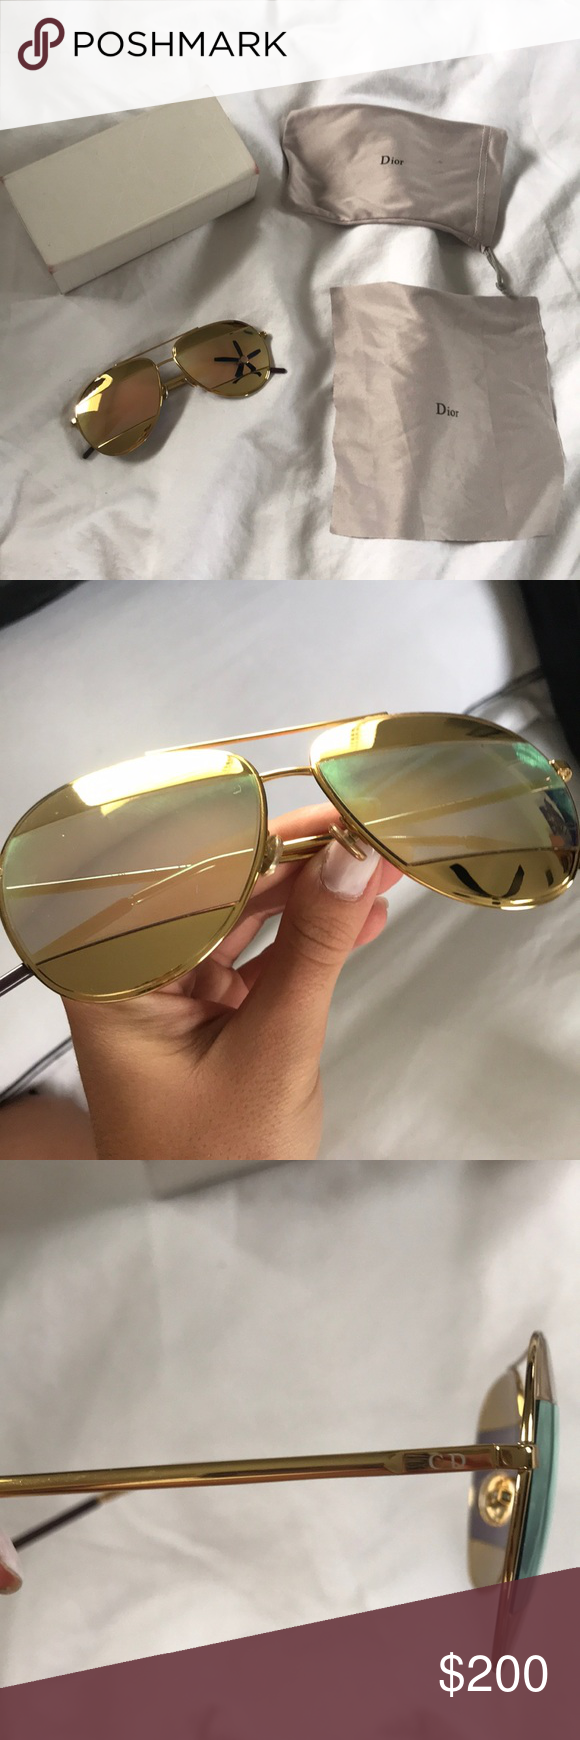 1d7990da7a0a Dior Split 1 Aviator Sunglasses If ever you want to feel like JLO in these  streets... these sunnies are for you. Sadly I paid full price for these